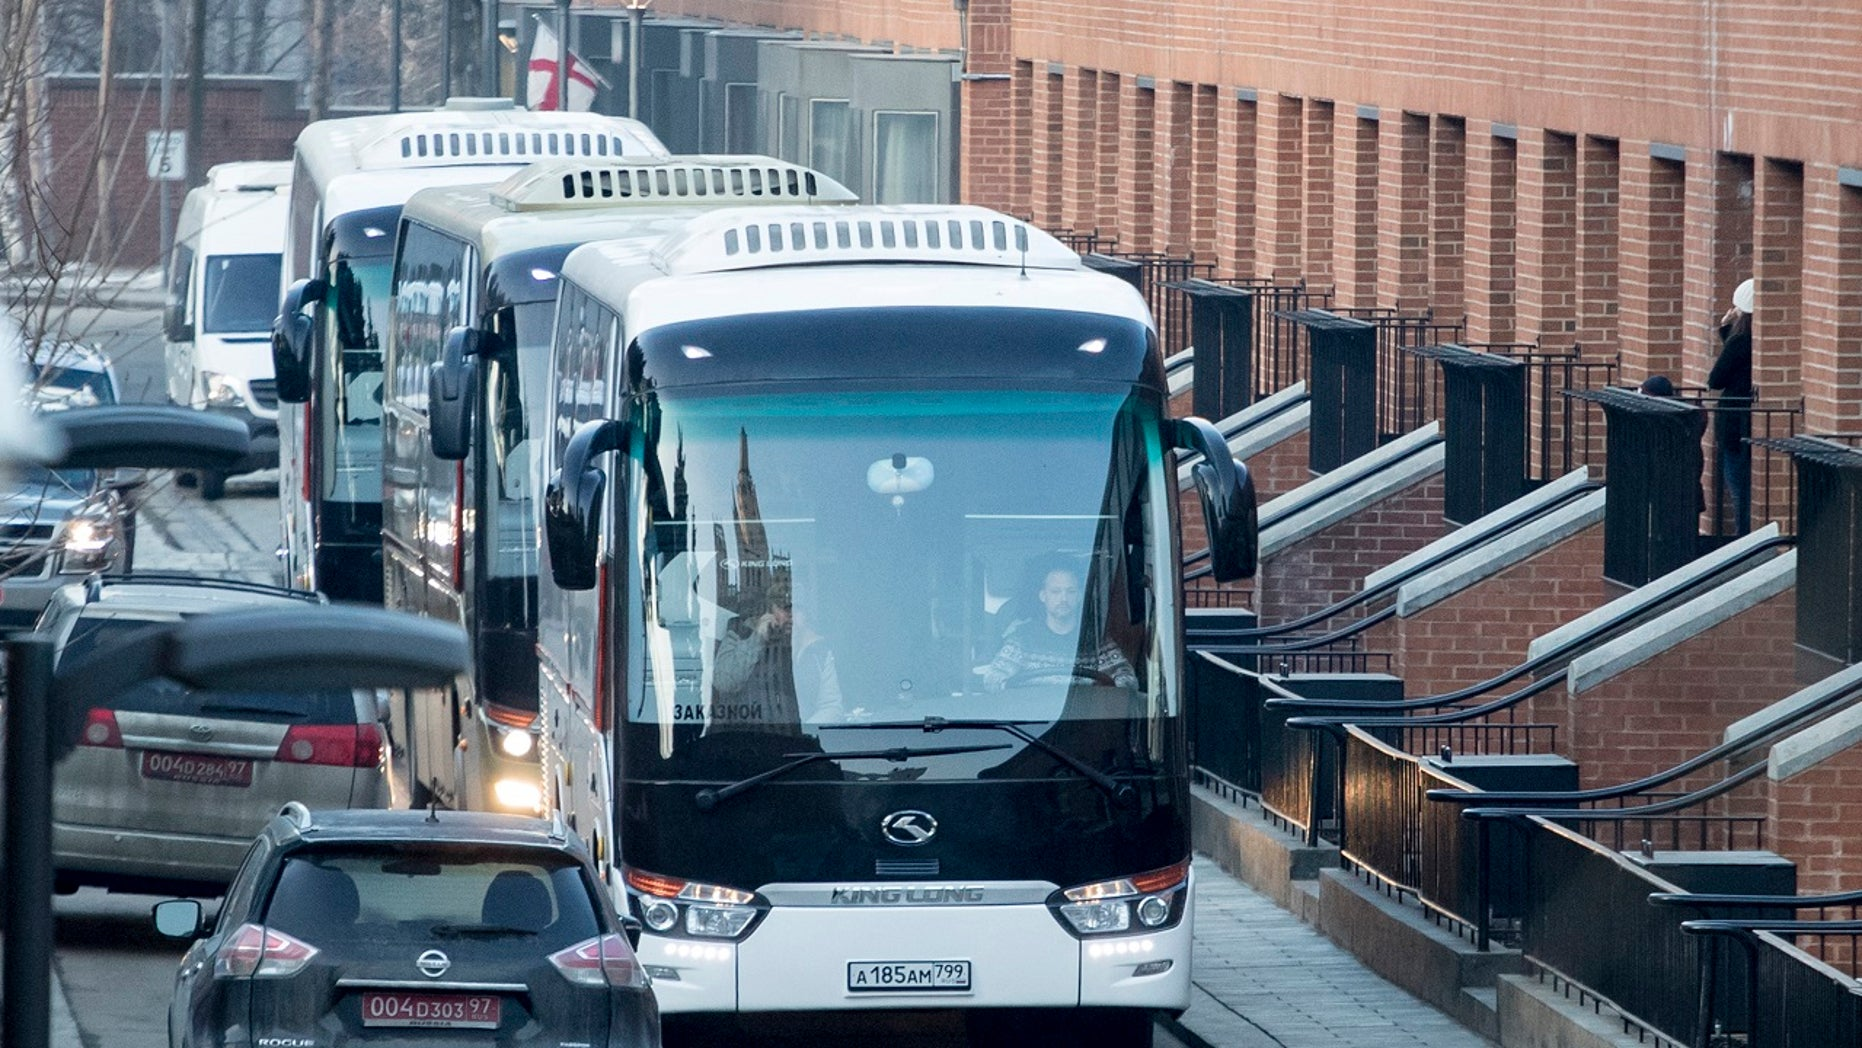 Buses believed to be carrying expelled diplomats prepare to leave the U.S. Embassy in Moscow, Russia, Thursday, April 5, 2018.